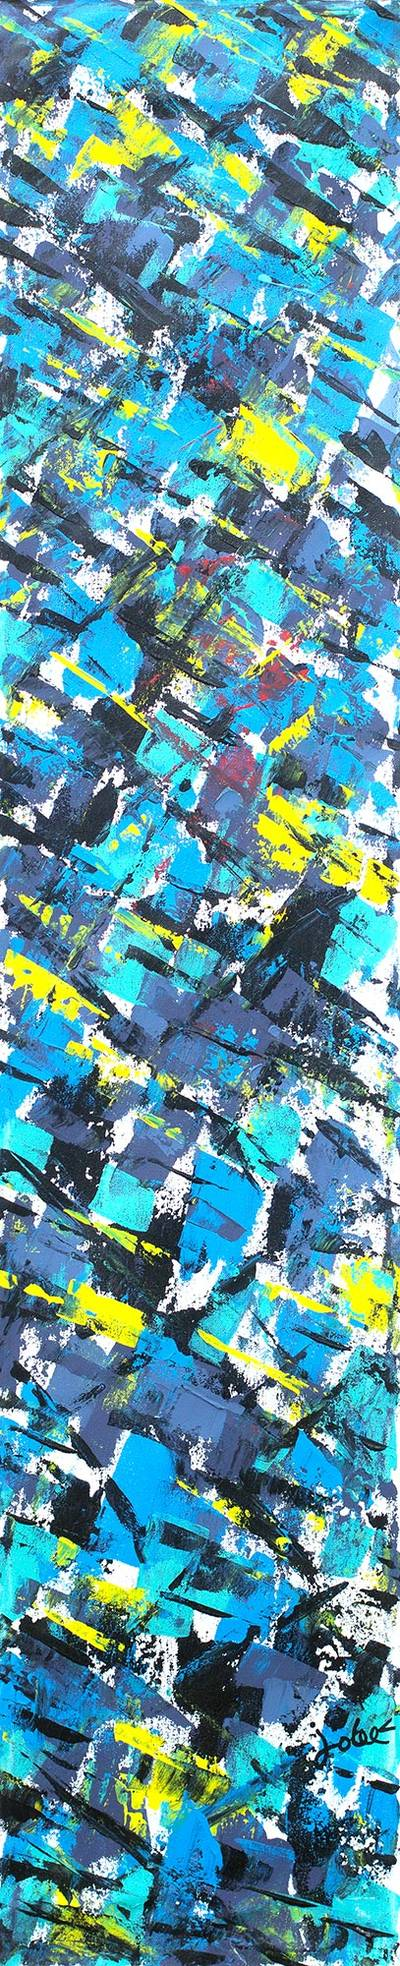 'Freshness' - Teal Abstract Signed Acrylic Painting from Ghana